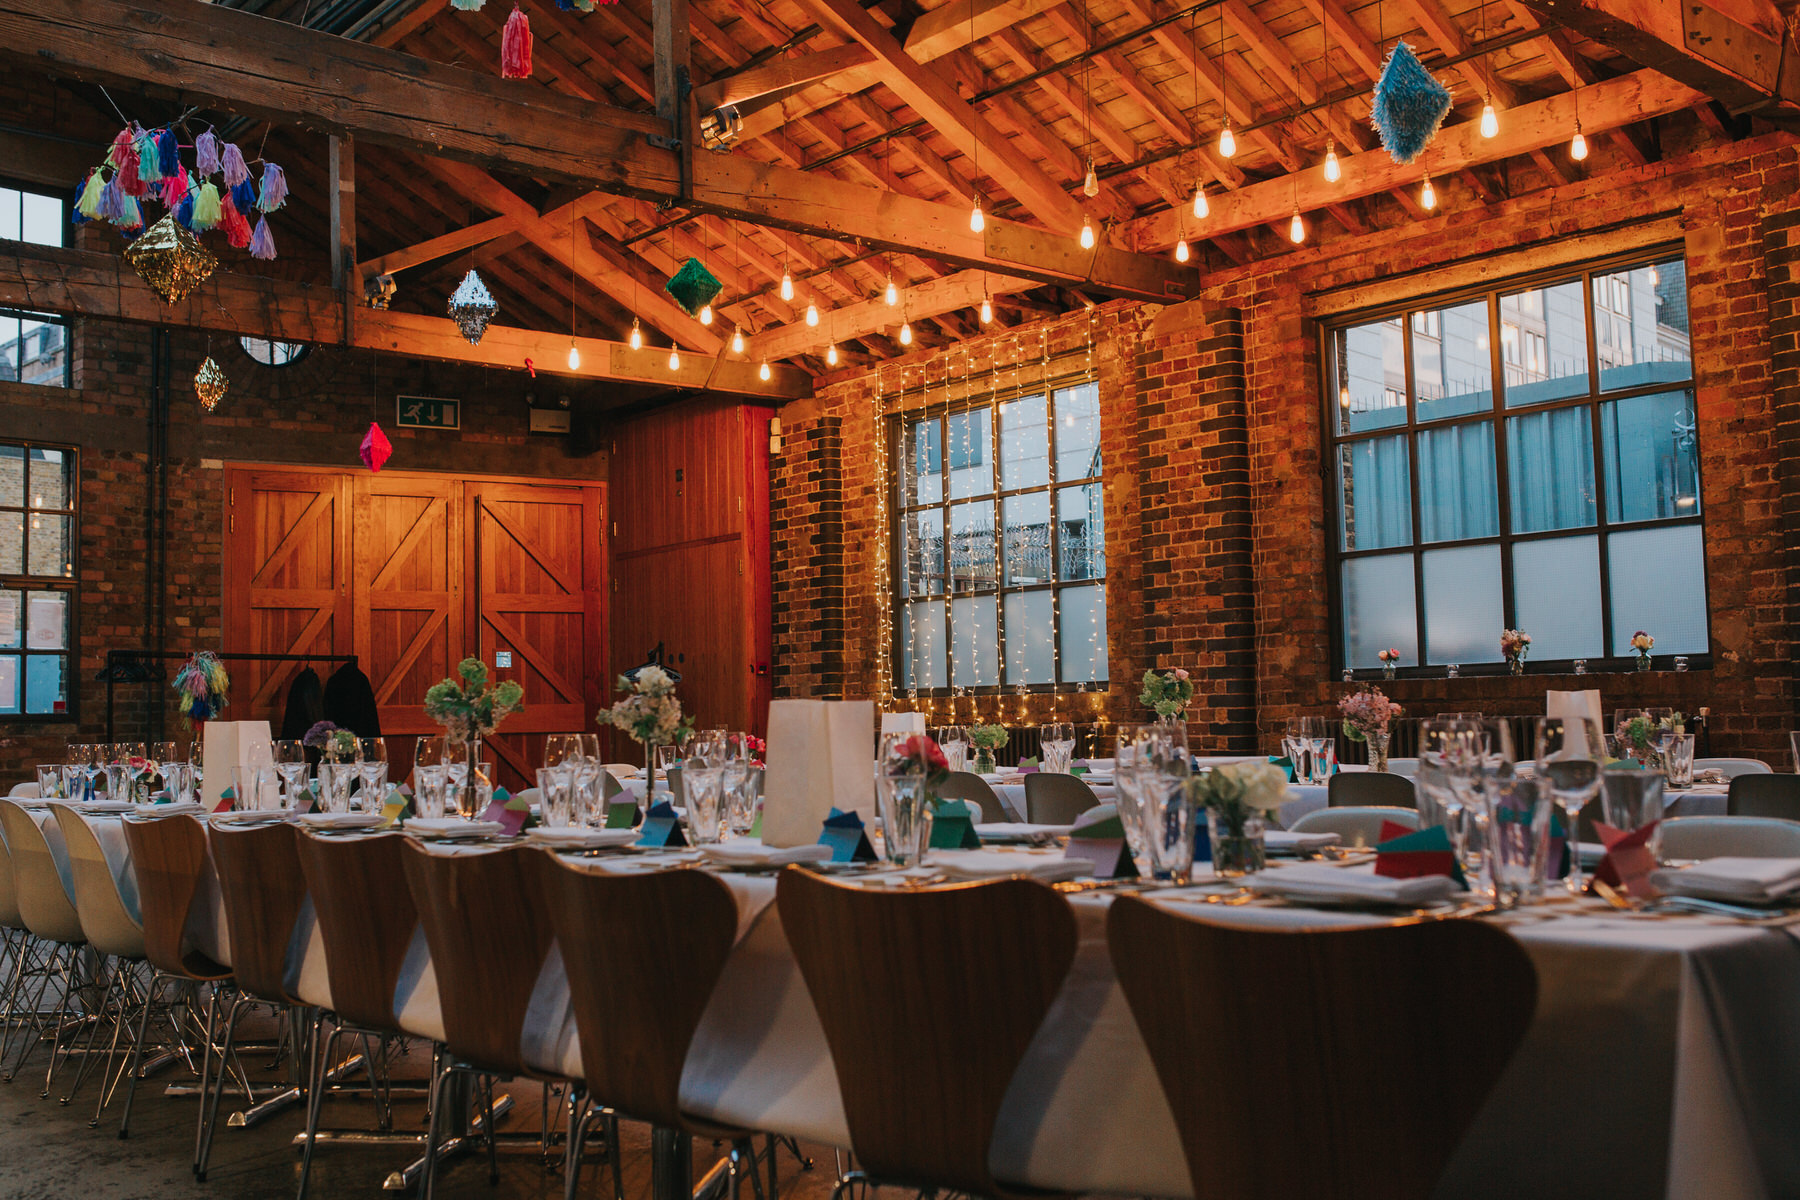 138-St Chads Place urban warehouse wedding party event space London.jpg